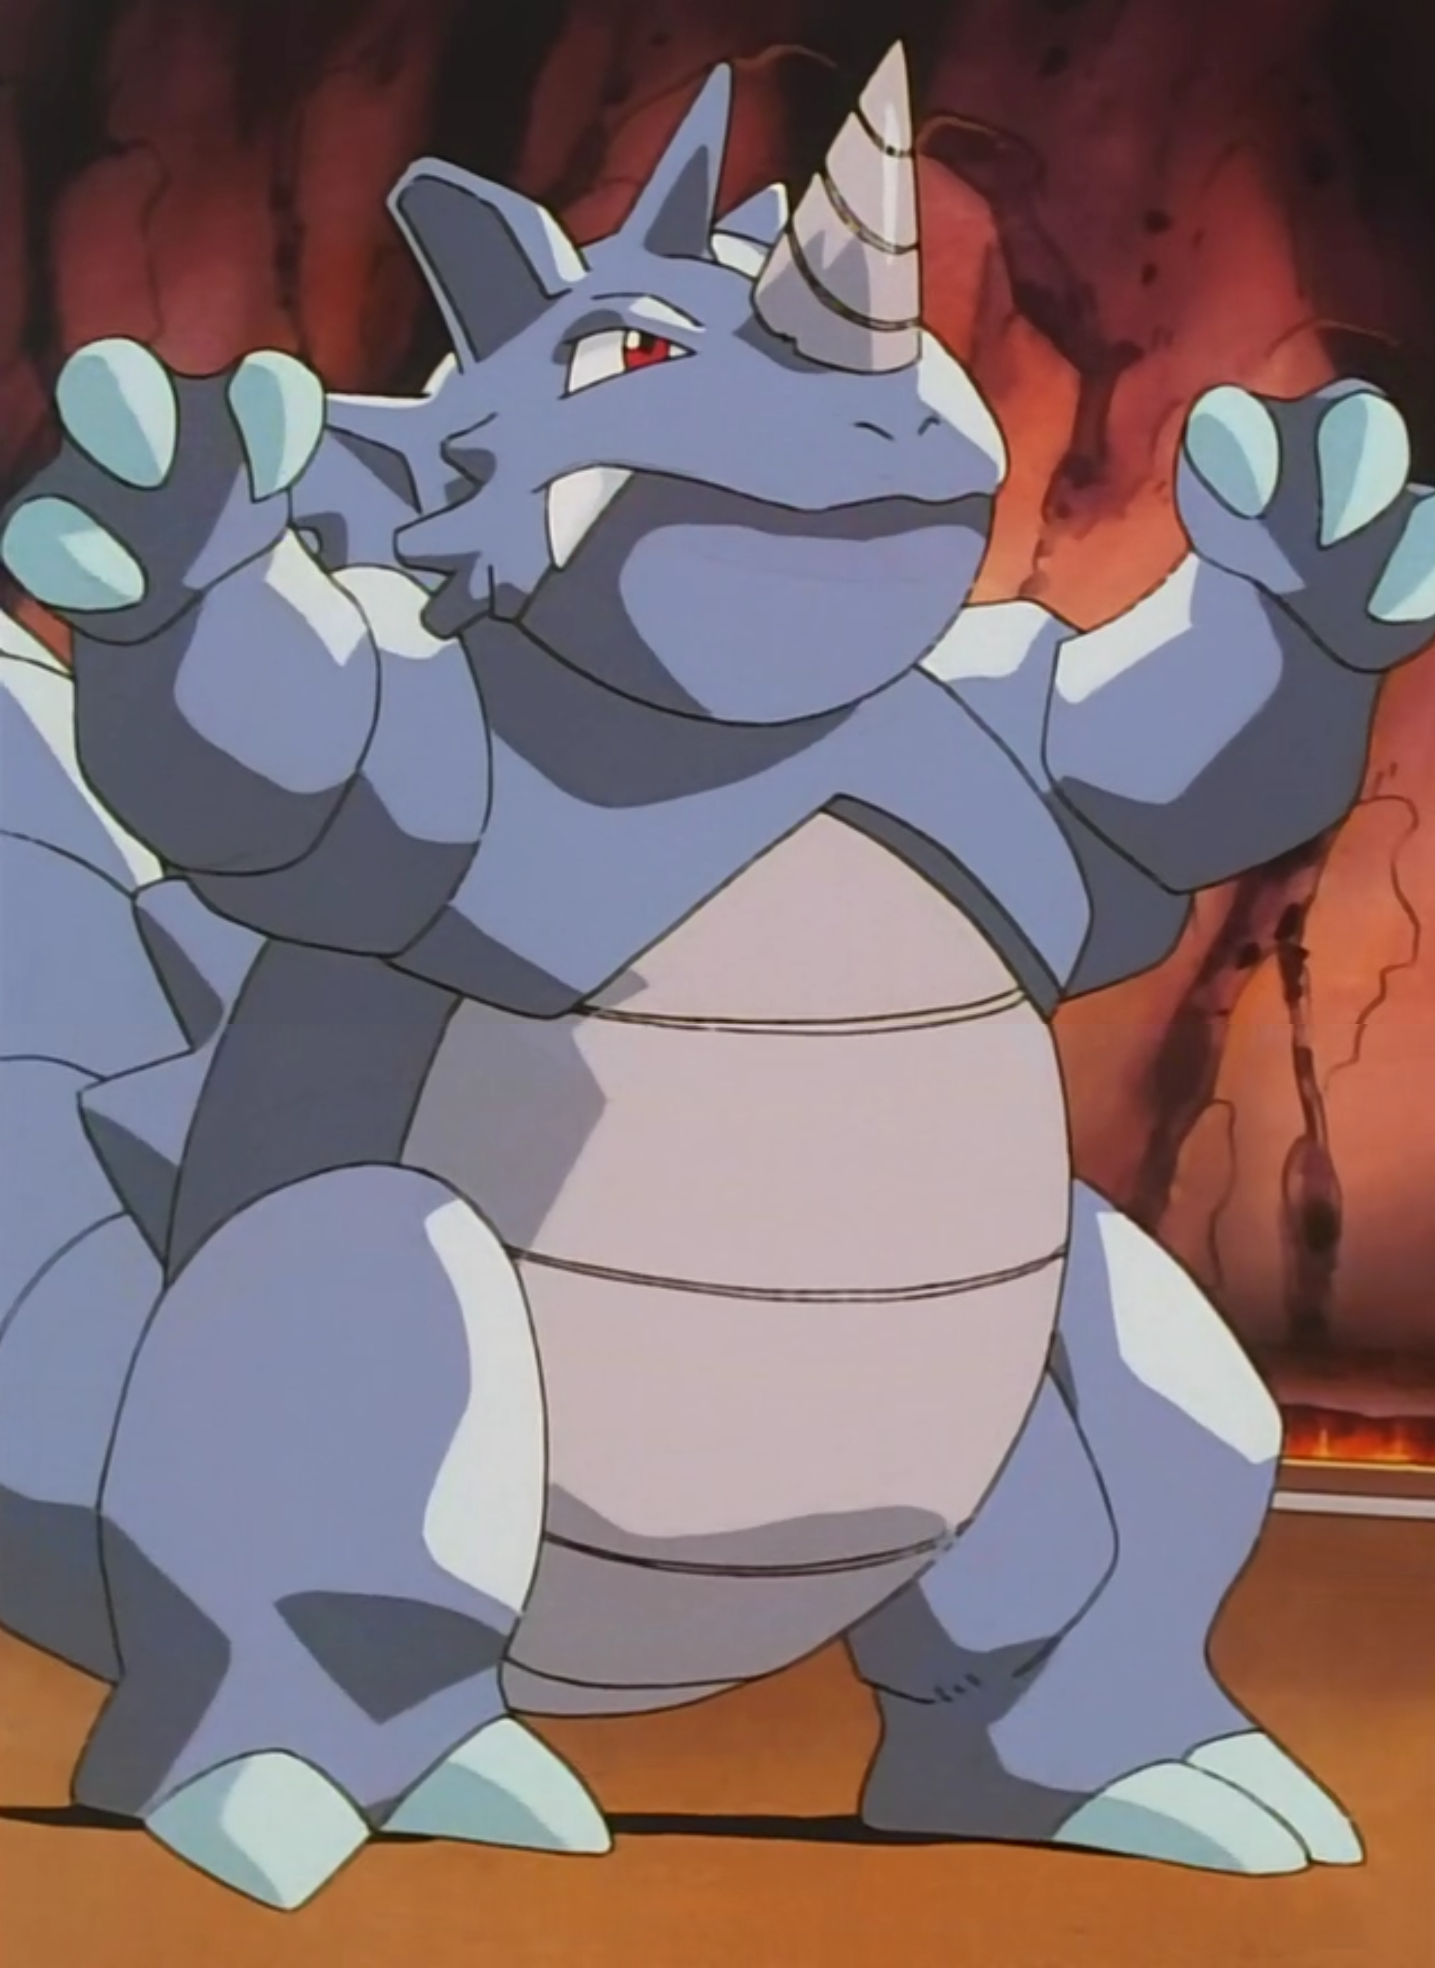 Blaine S Rhydon Pok 233 Mon Wiki Fandom Powered By Wikia